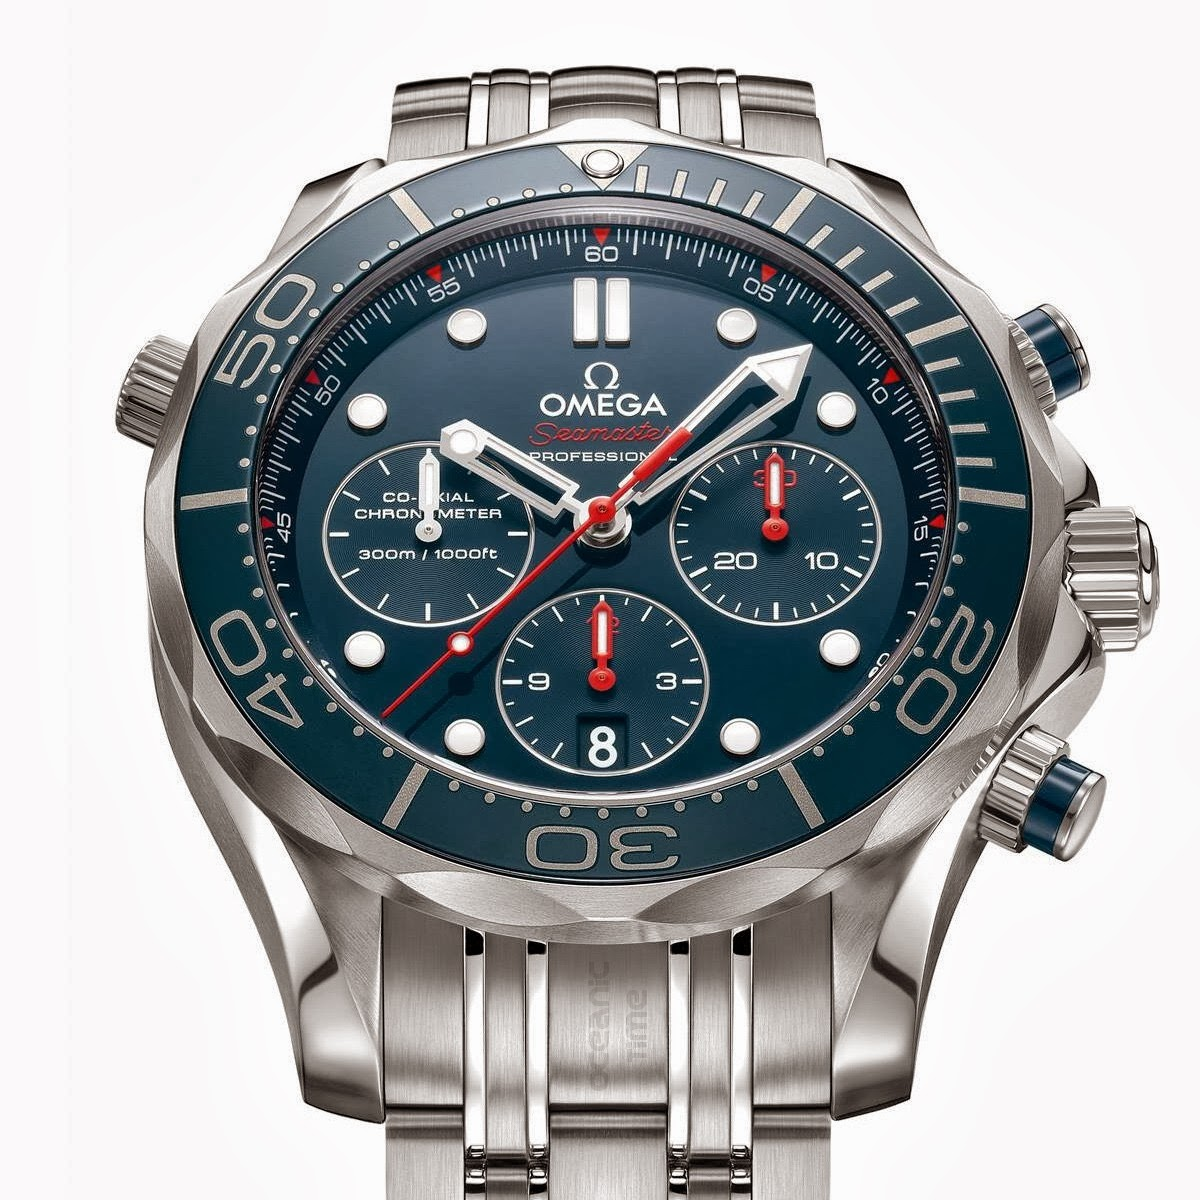 OceanicTime: OMEGA Seamaster DIVER 300M Co-Axial CHRONO